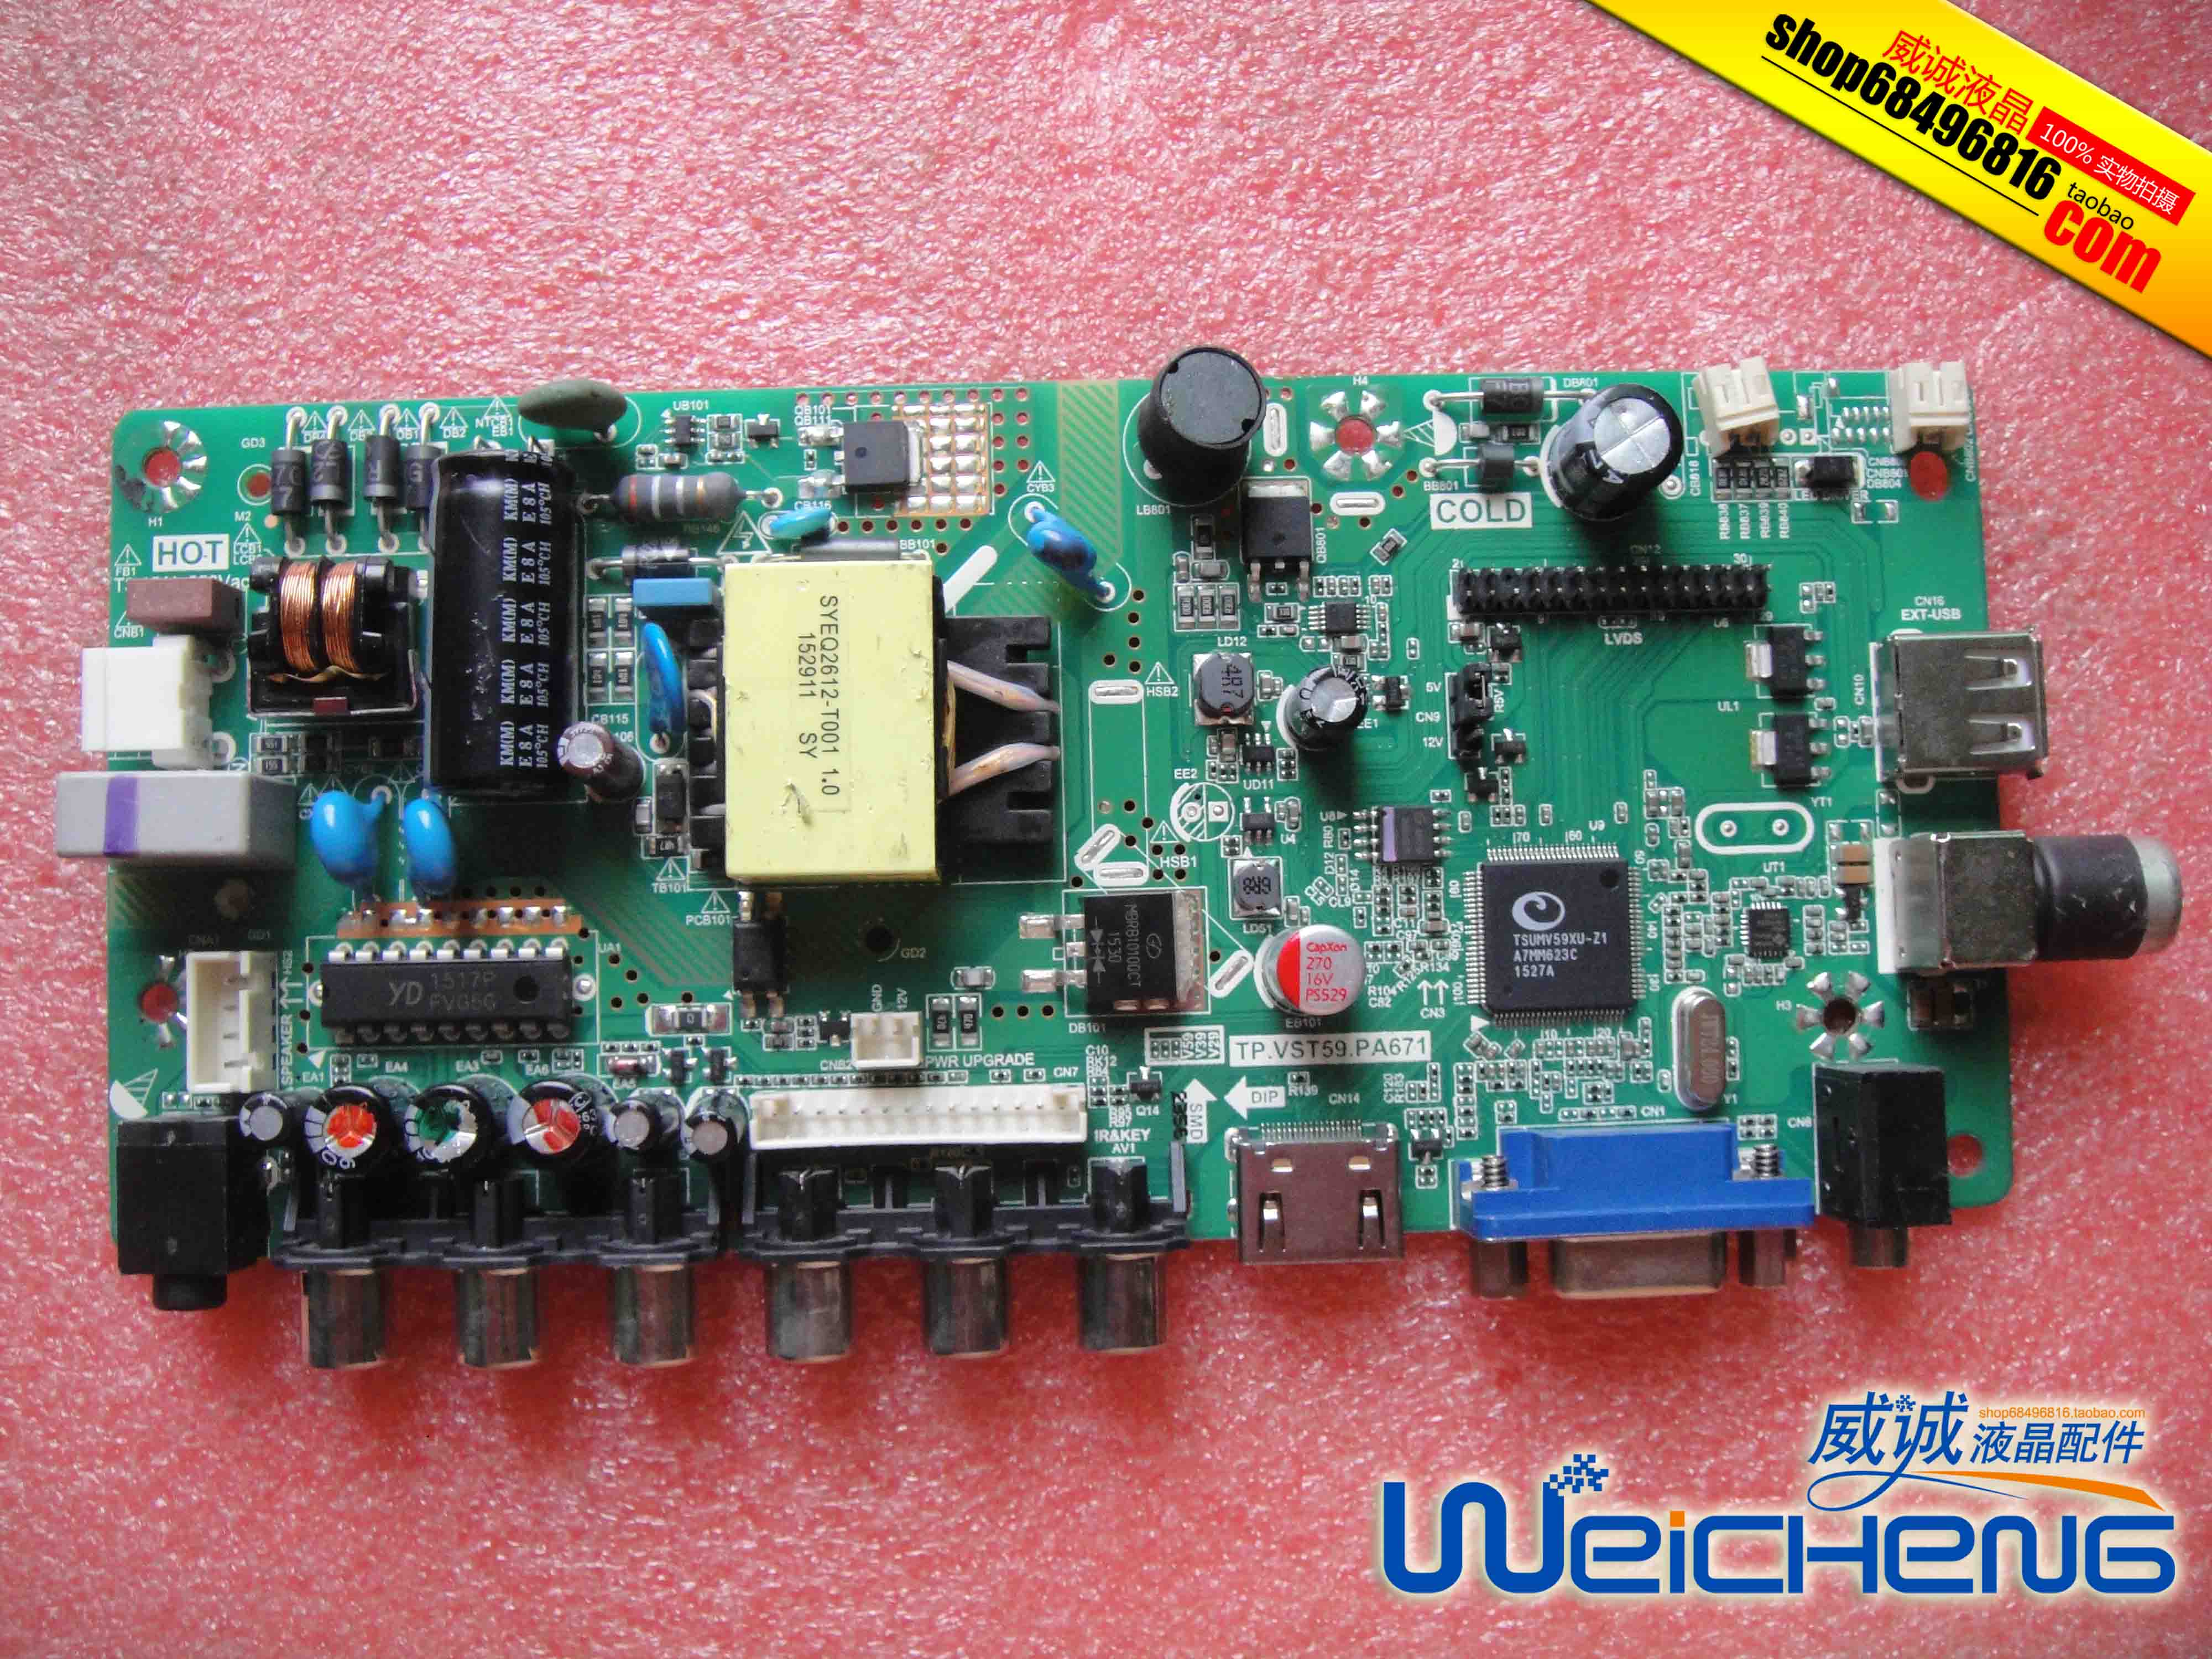 Accessories & Parts Main Board Power Board Circuit Logic Board Constant Current Board 42ce530b Led T.ms18vg.72 T.vst59.a5 Screen T420hw09